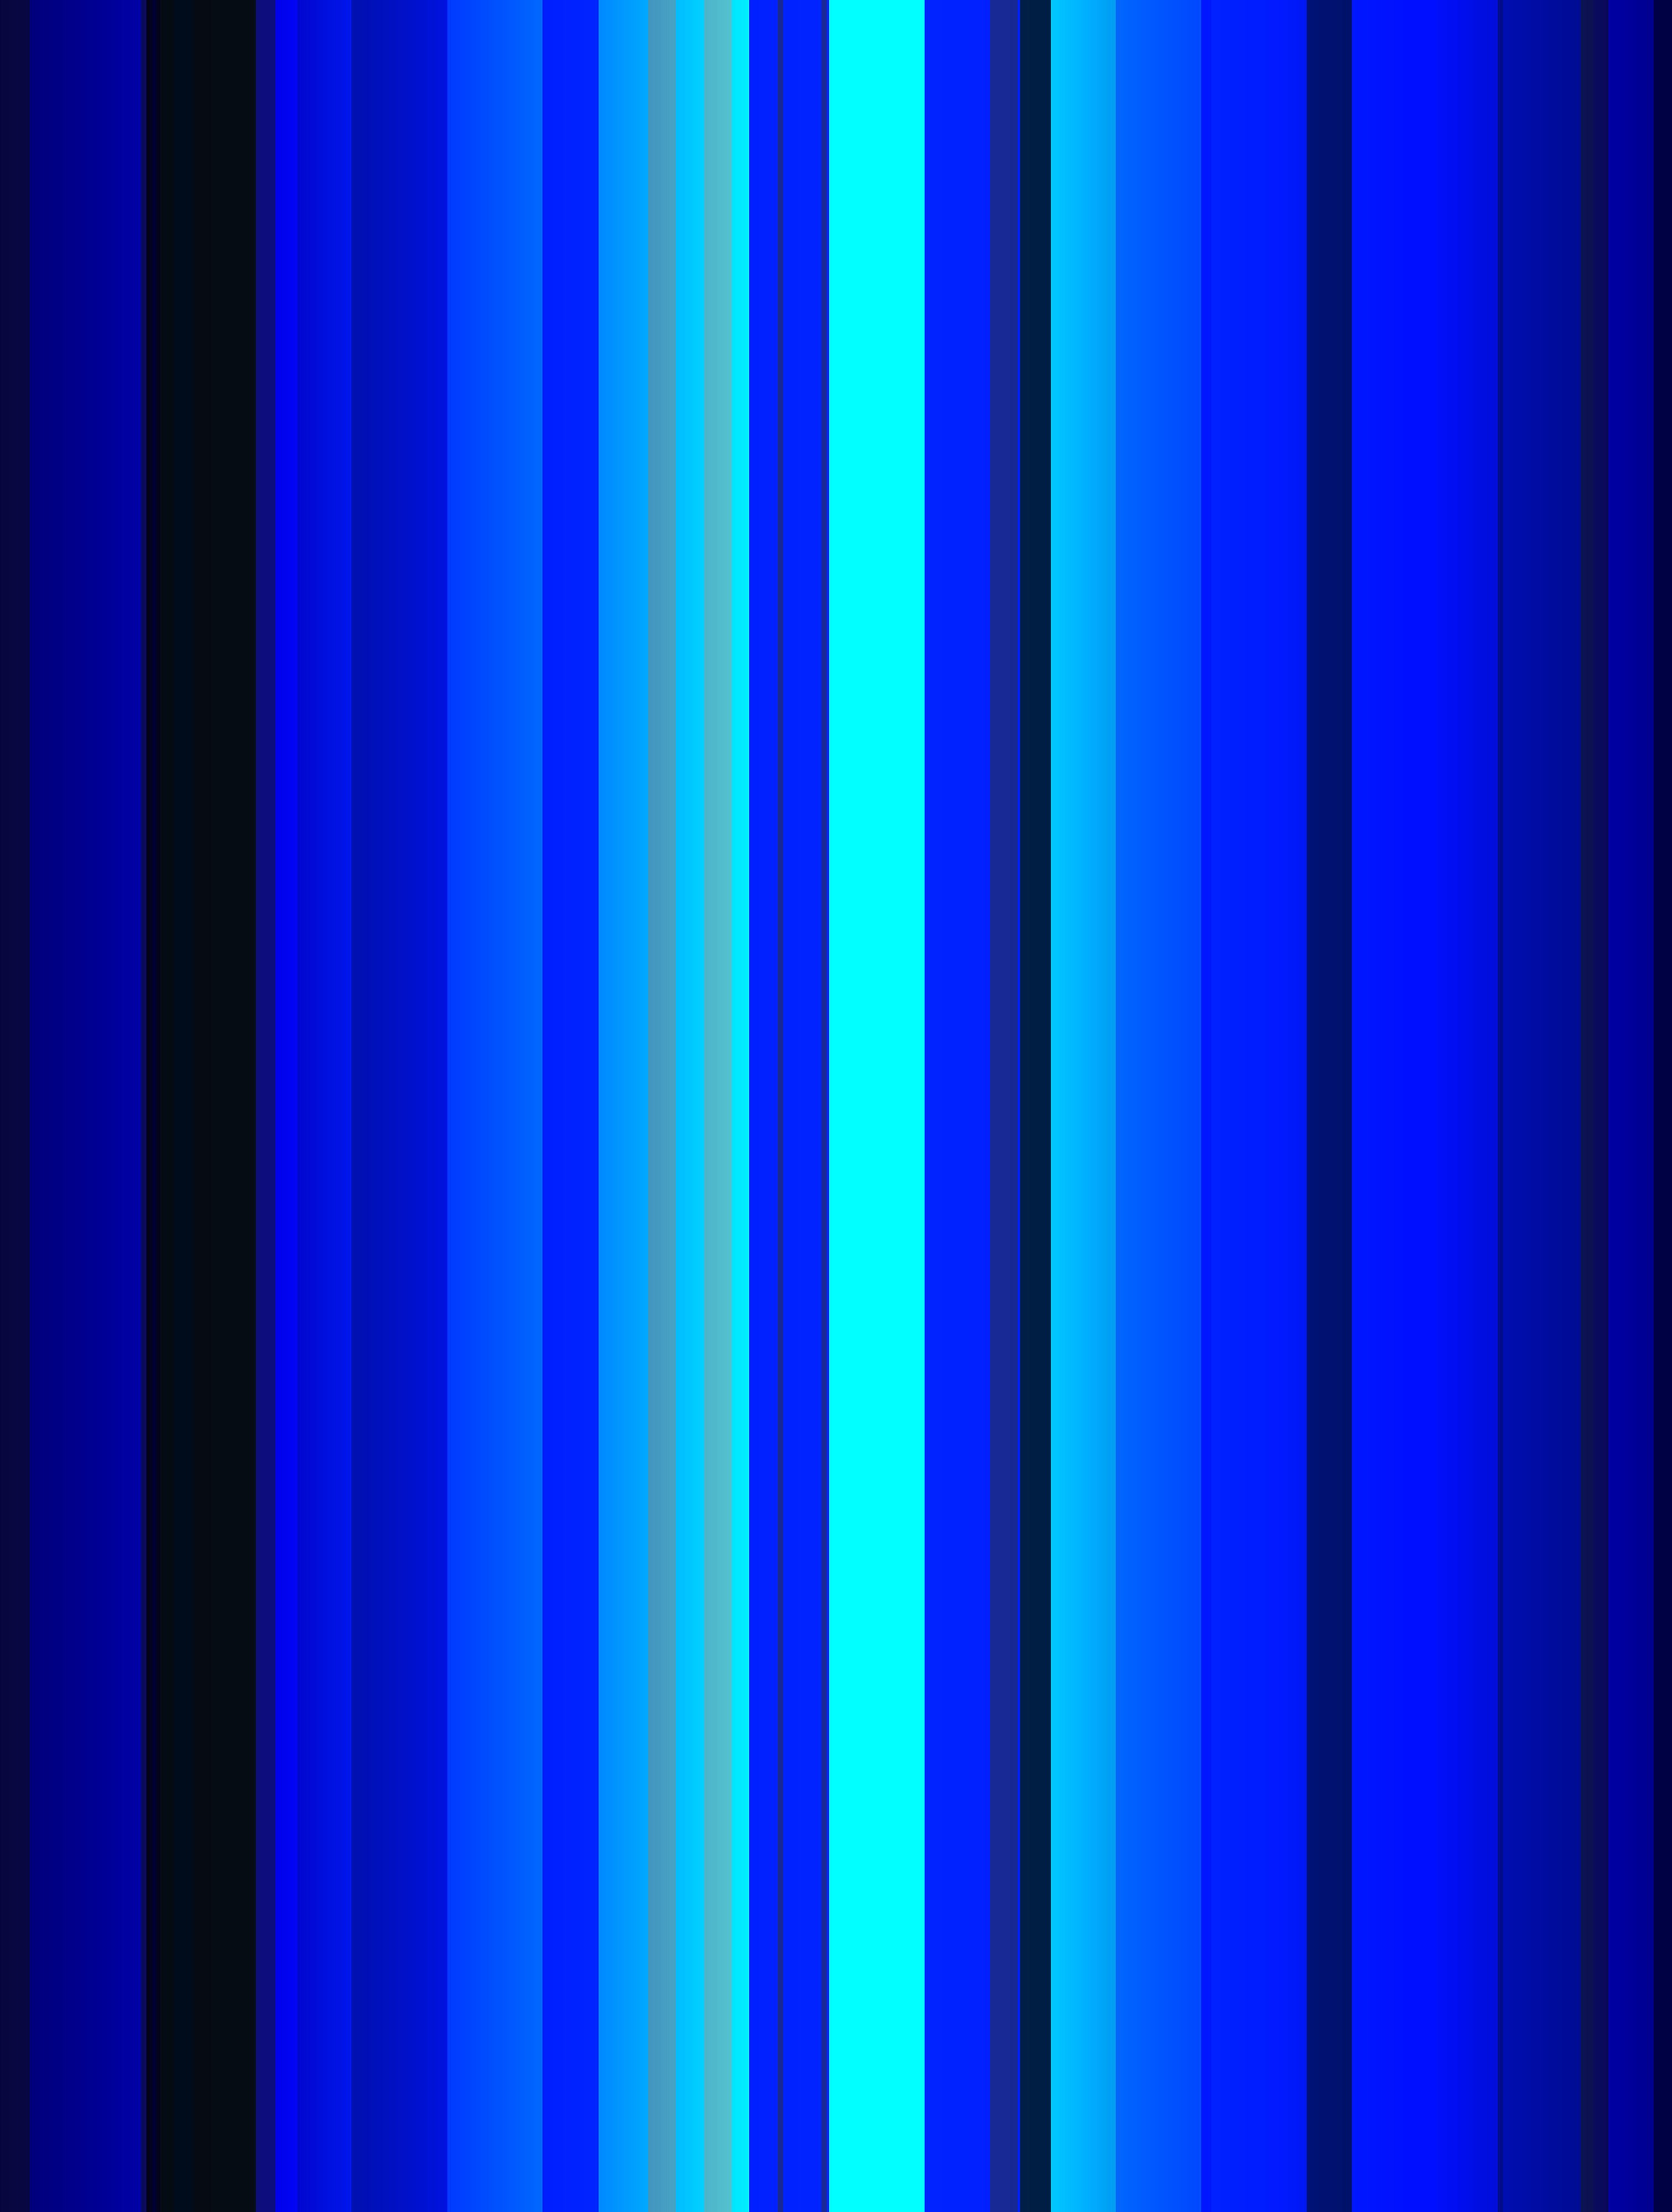 Wallpaper Full Color Hd Free Stock Photo 1496 Glowing Blue Freeimageslive